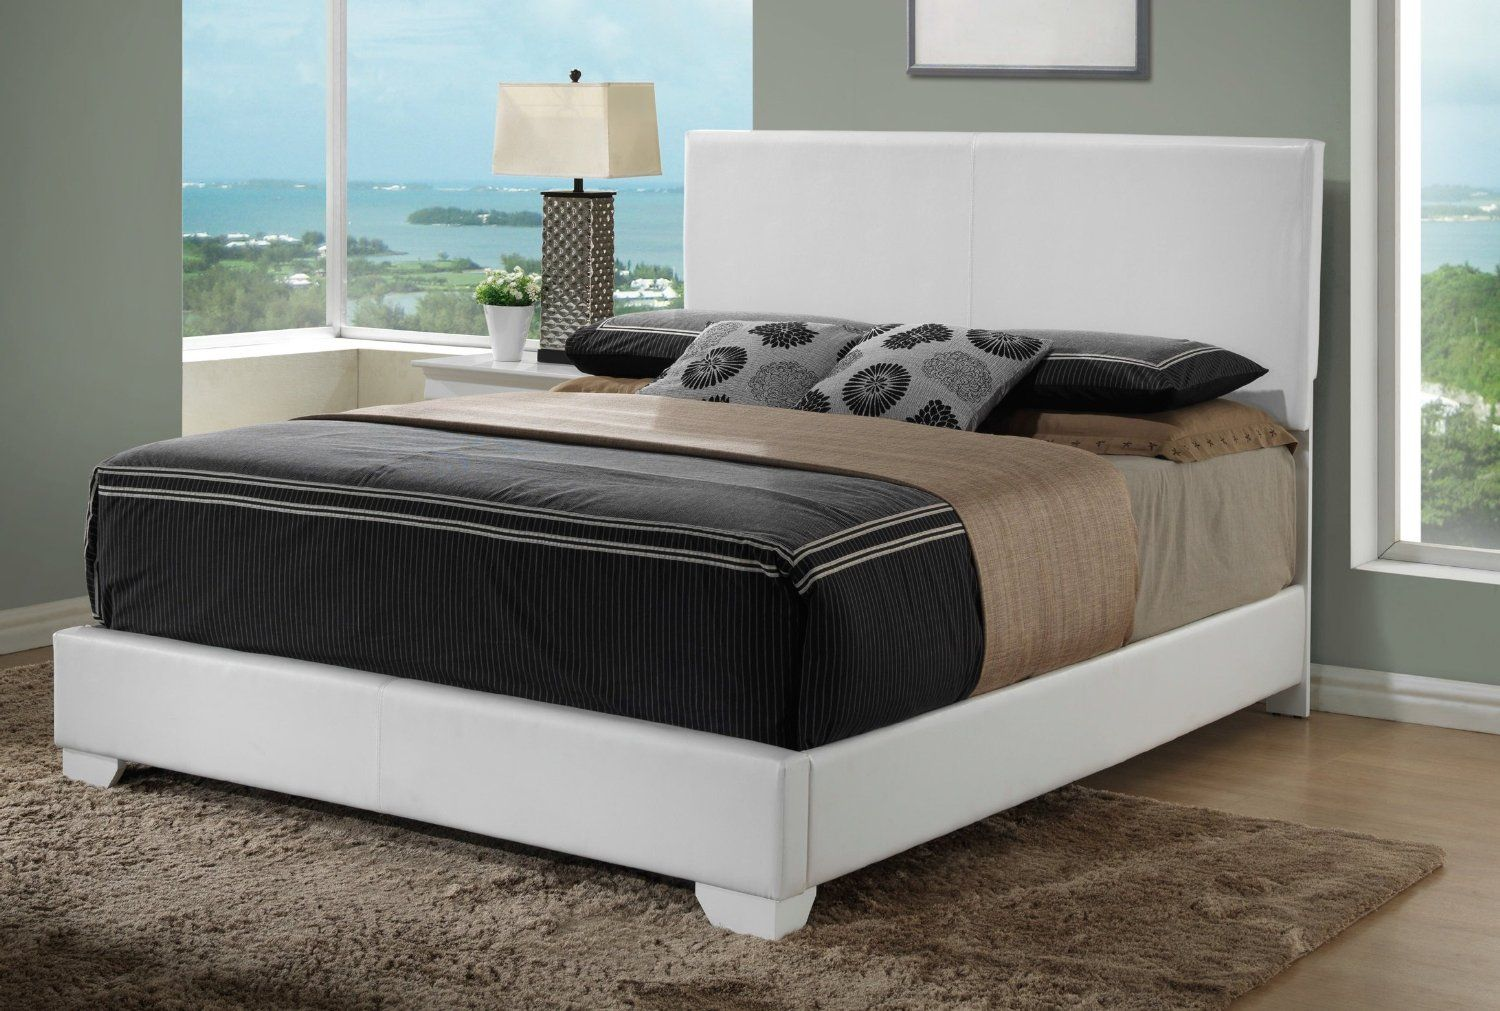 Amazon.com: White - Queen Size - Modern Headboard Leather Look ...